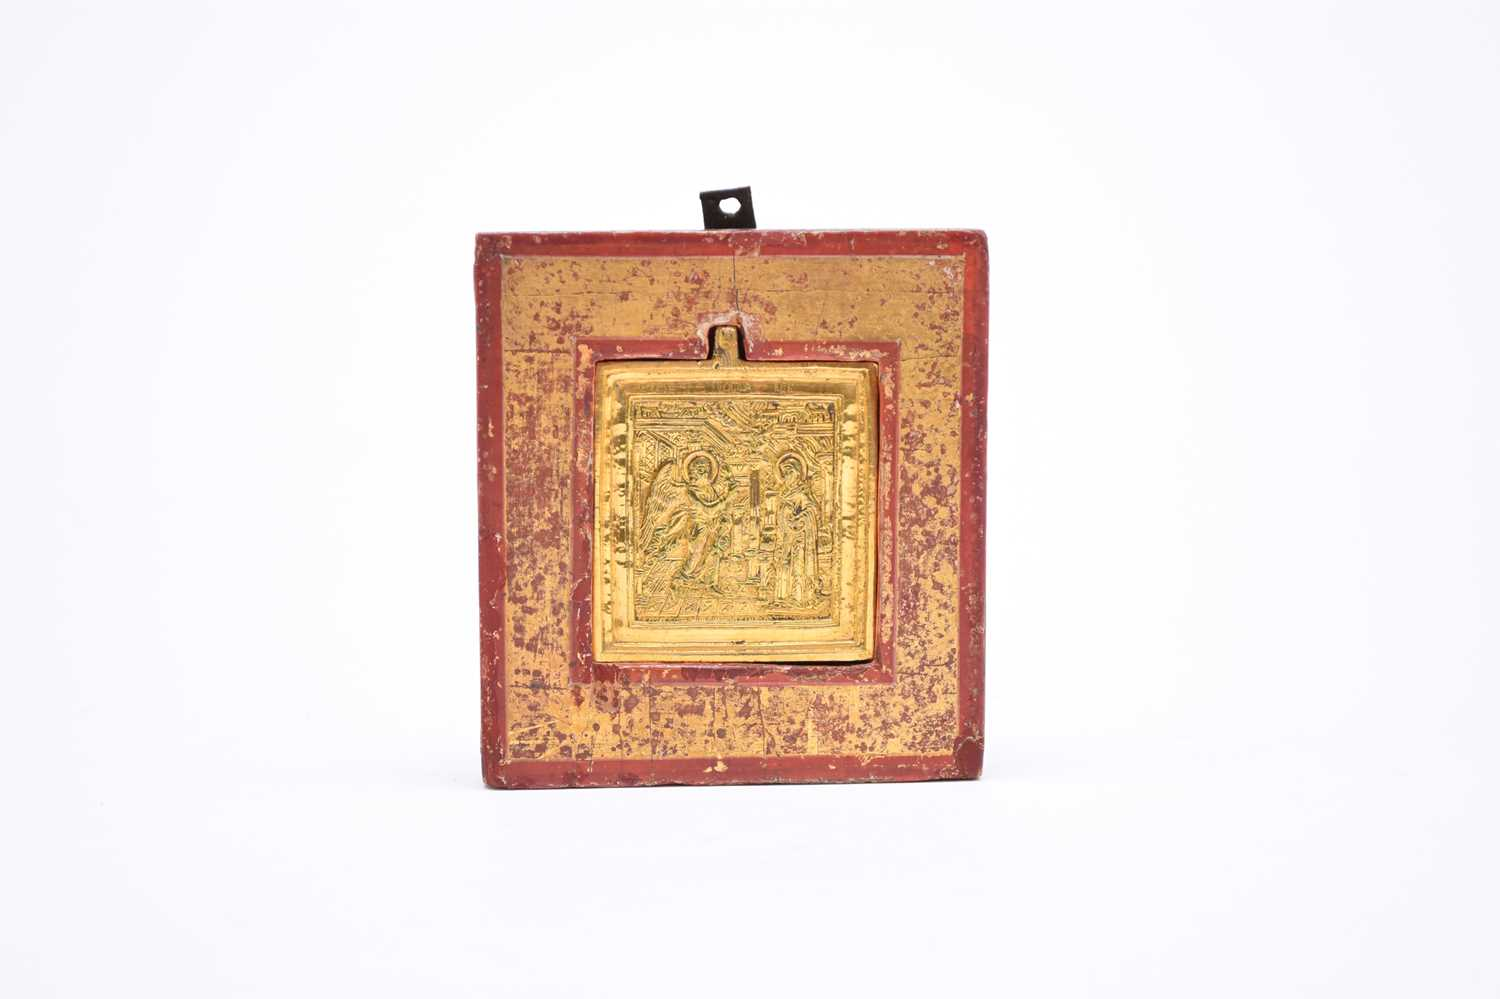 A 19th century Russian, gold coloured metal, 'portable' icon - Image 3 of 3